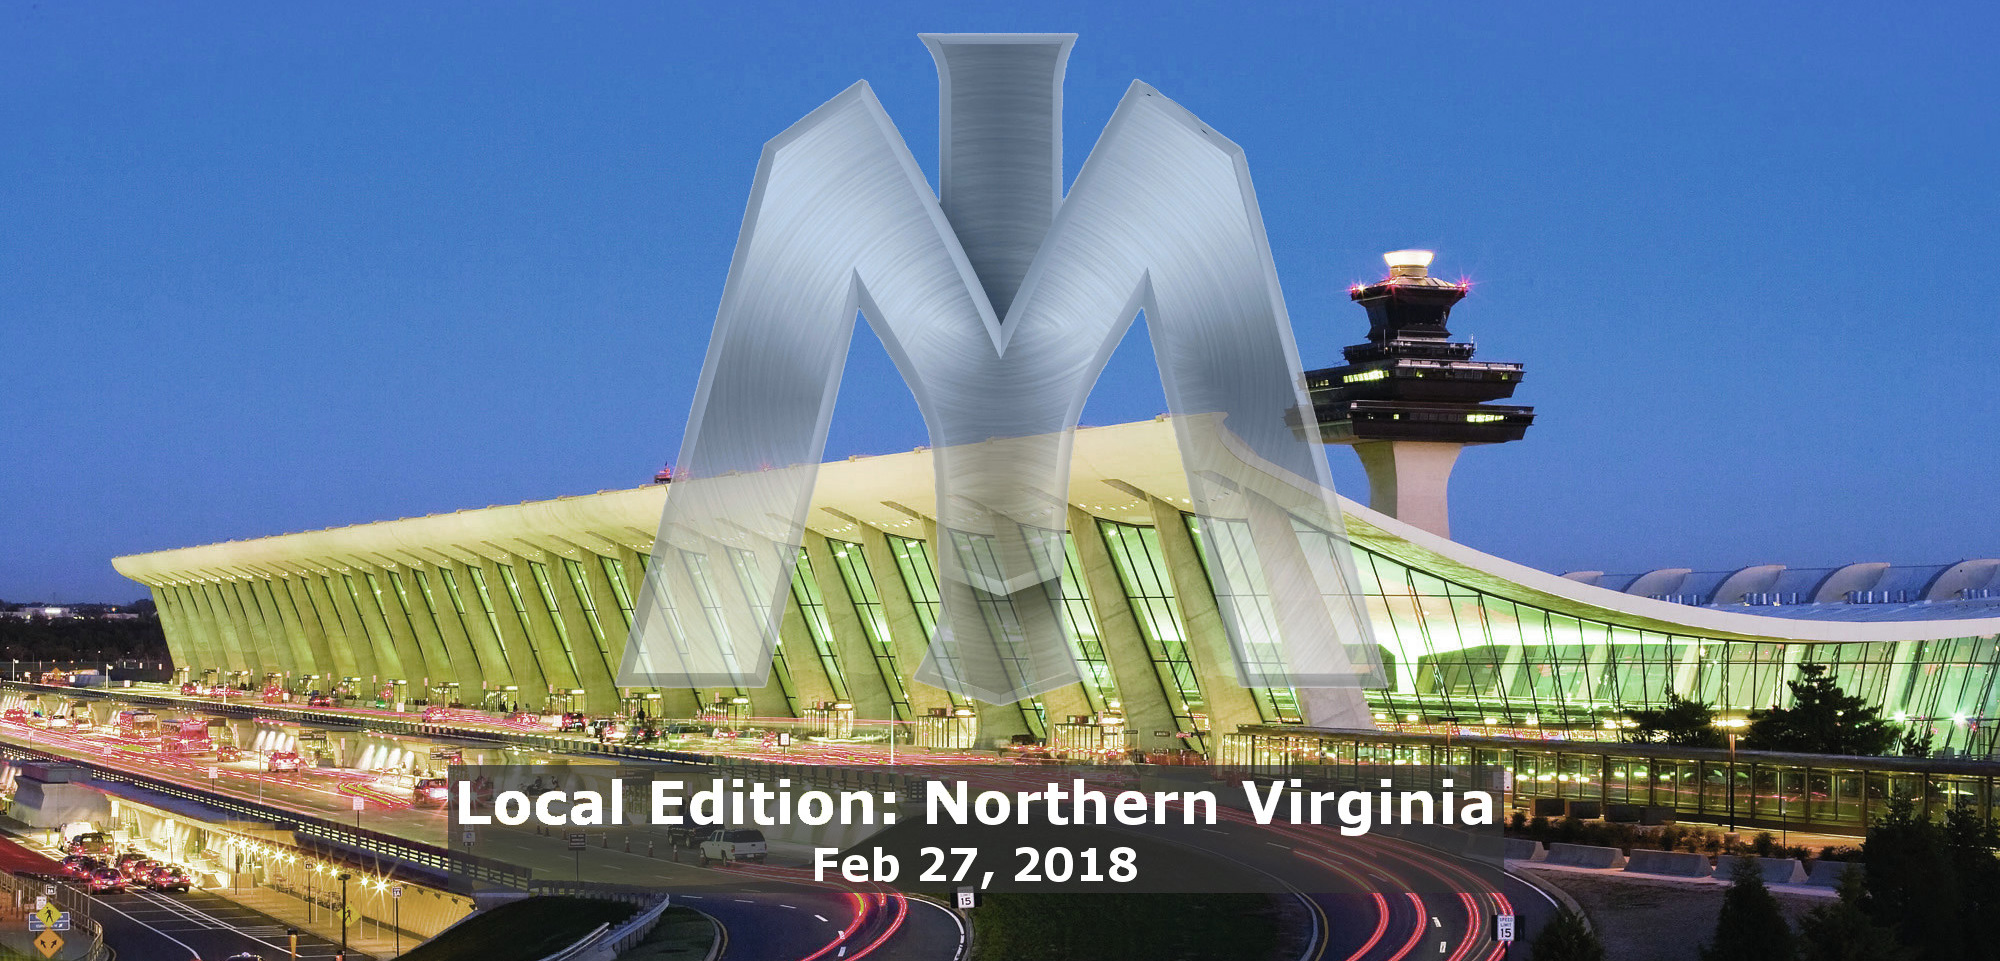 Local Edition: Northern Virginia